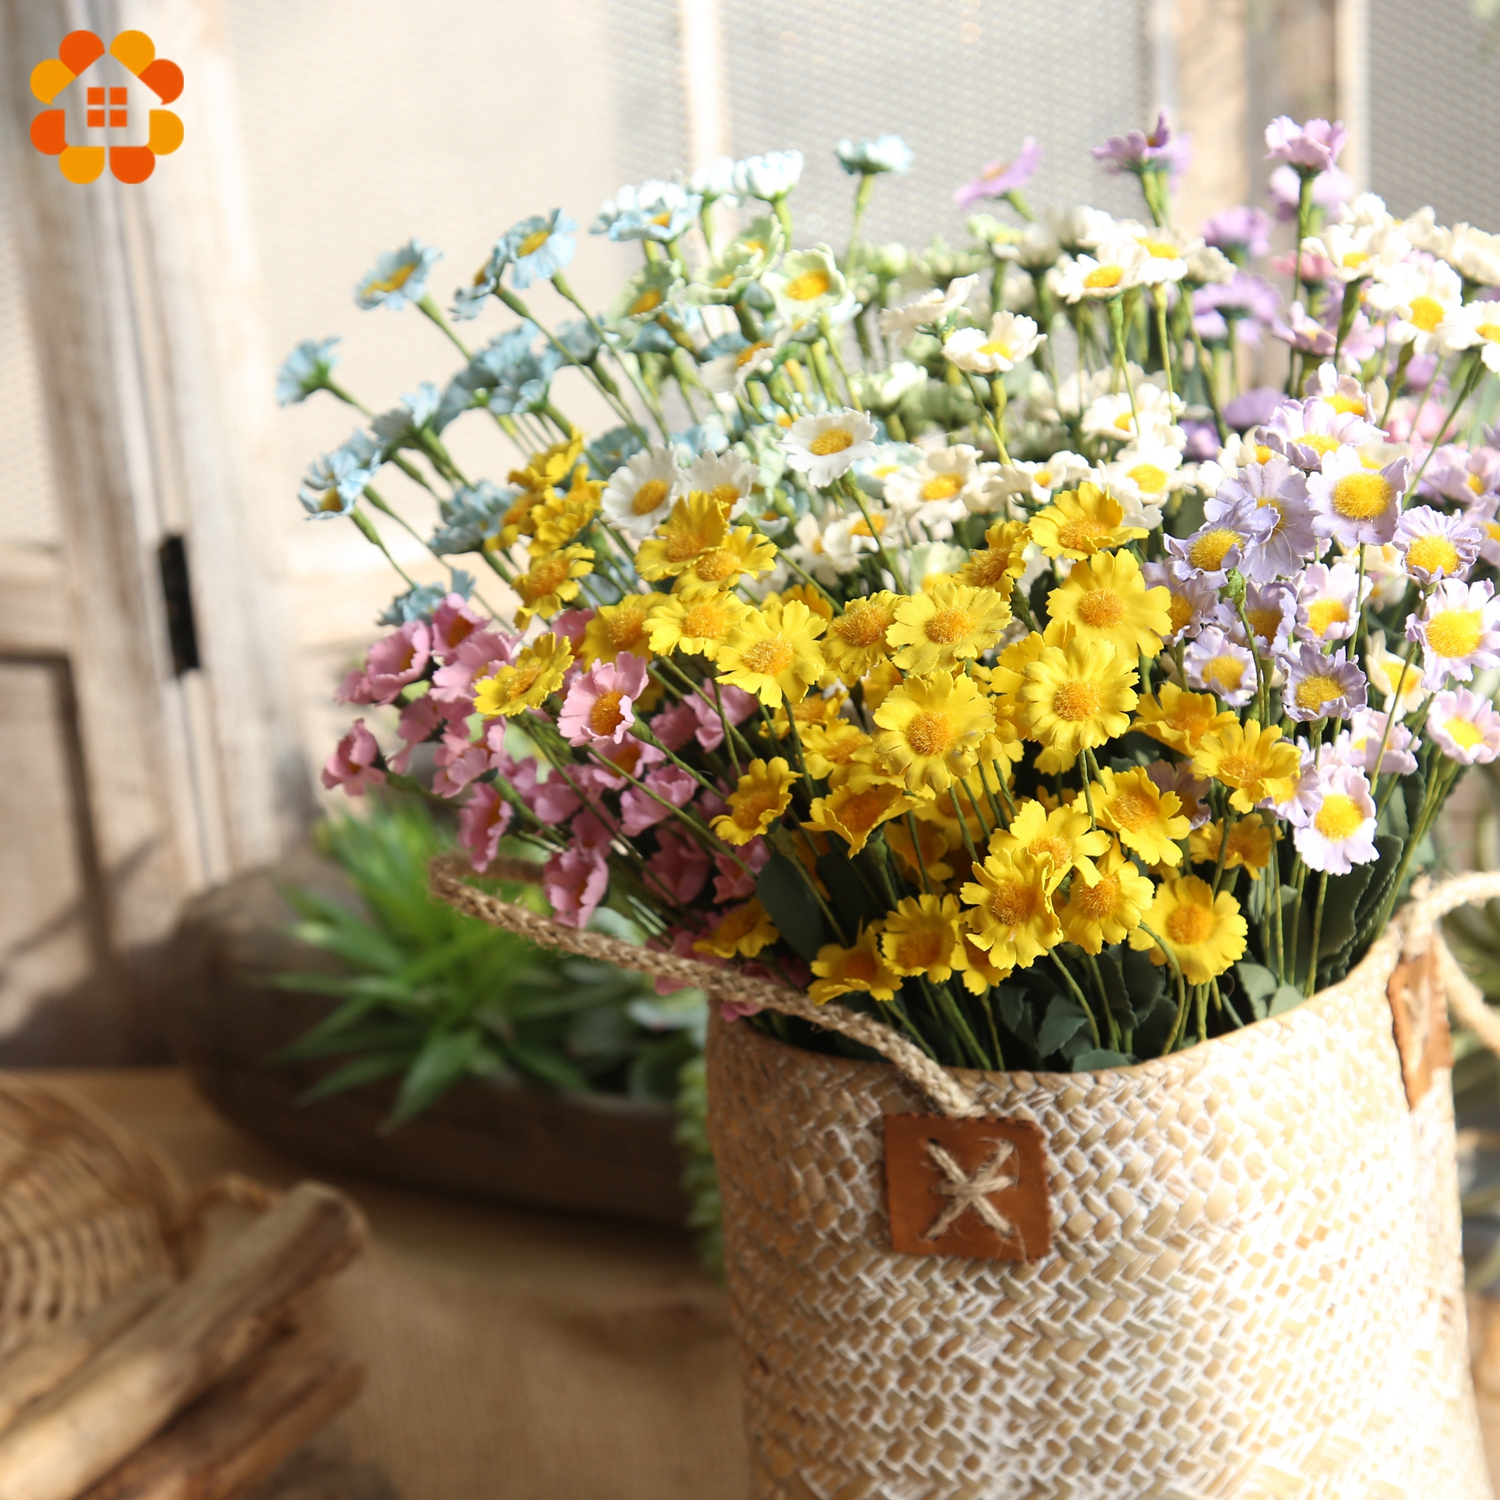 15 Heads/Branch Colorful Artificial Flowers Silk Daisy Flowers Fake Flowers DIY Wedding Party Decoration Home Vases Decoration